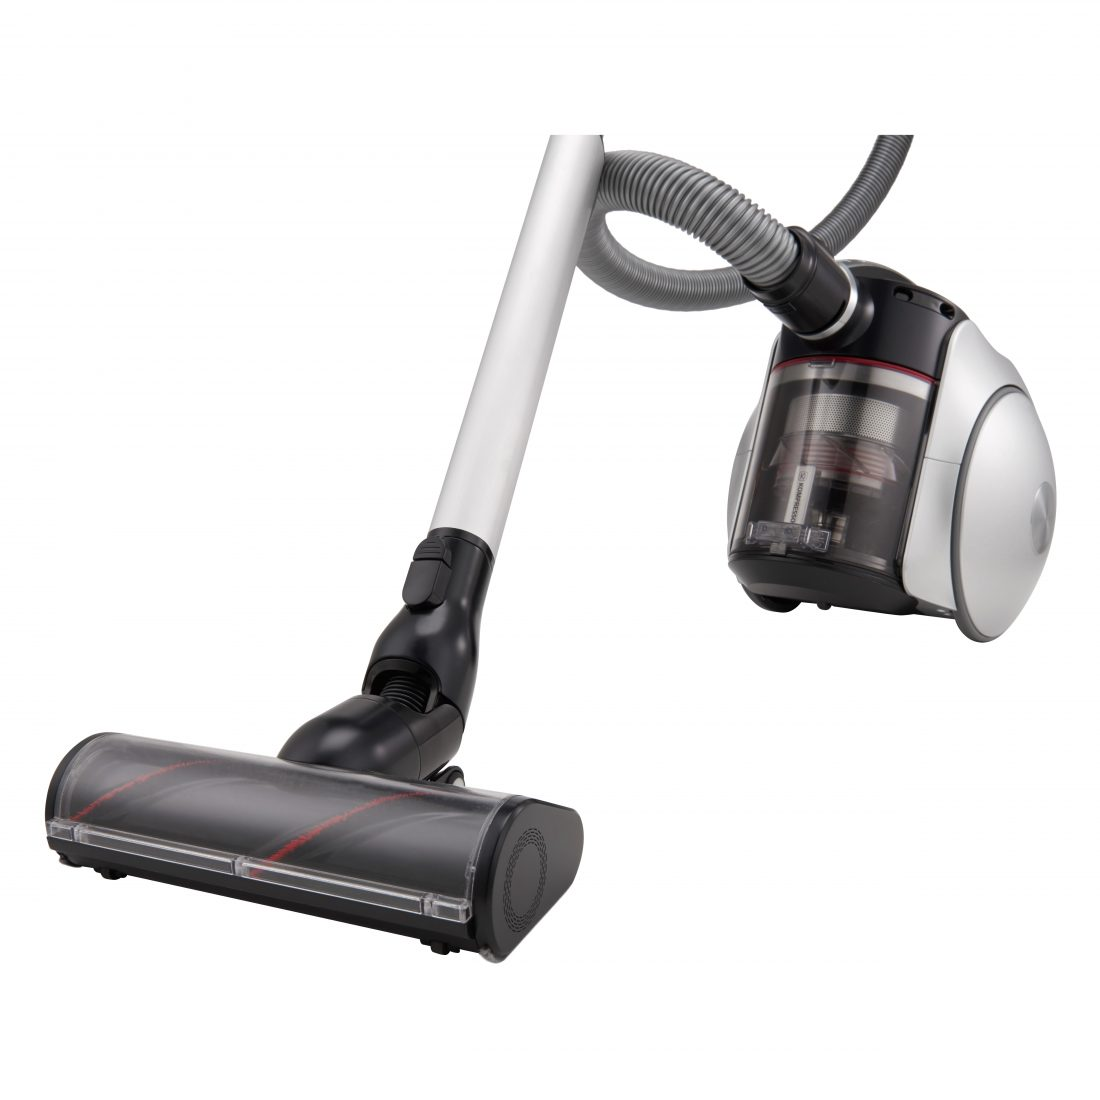 Close-up view of the LG CordZero Canister vacuum cleaner seen from a 15-degree angle